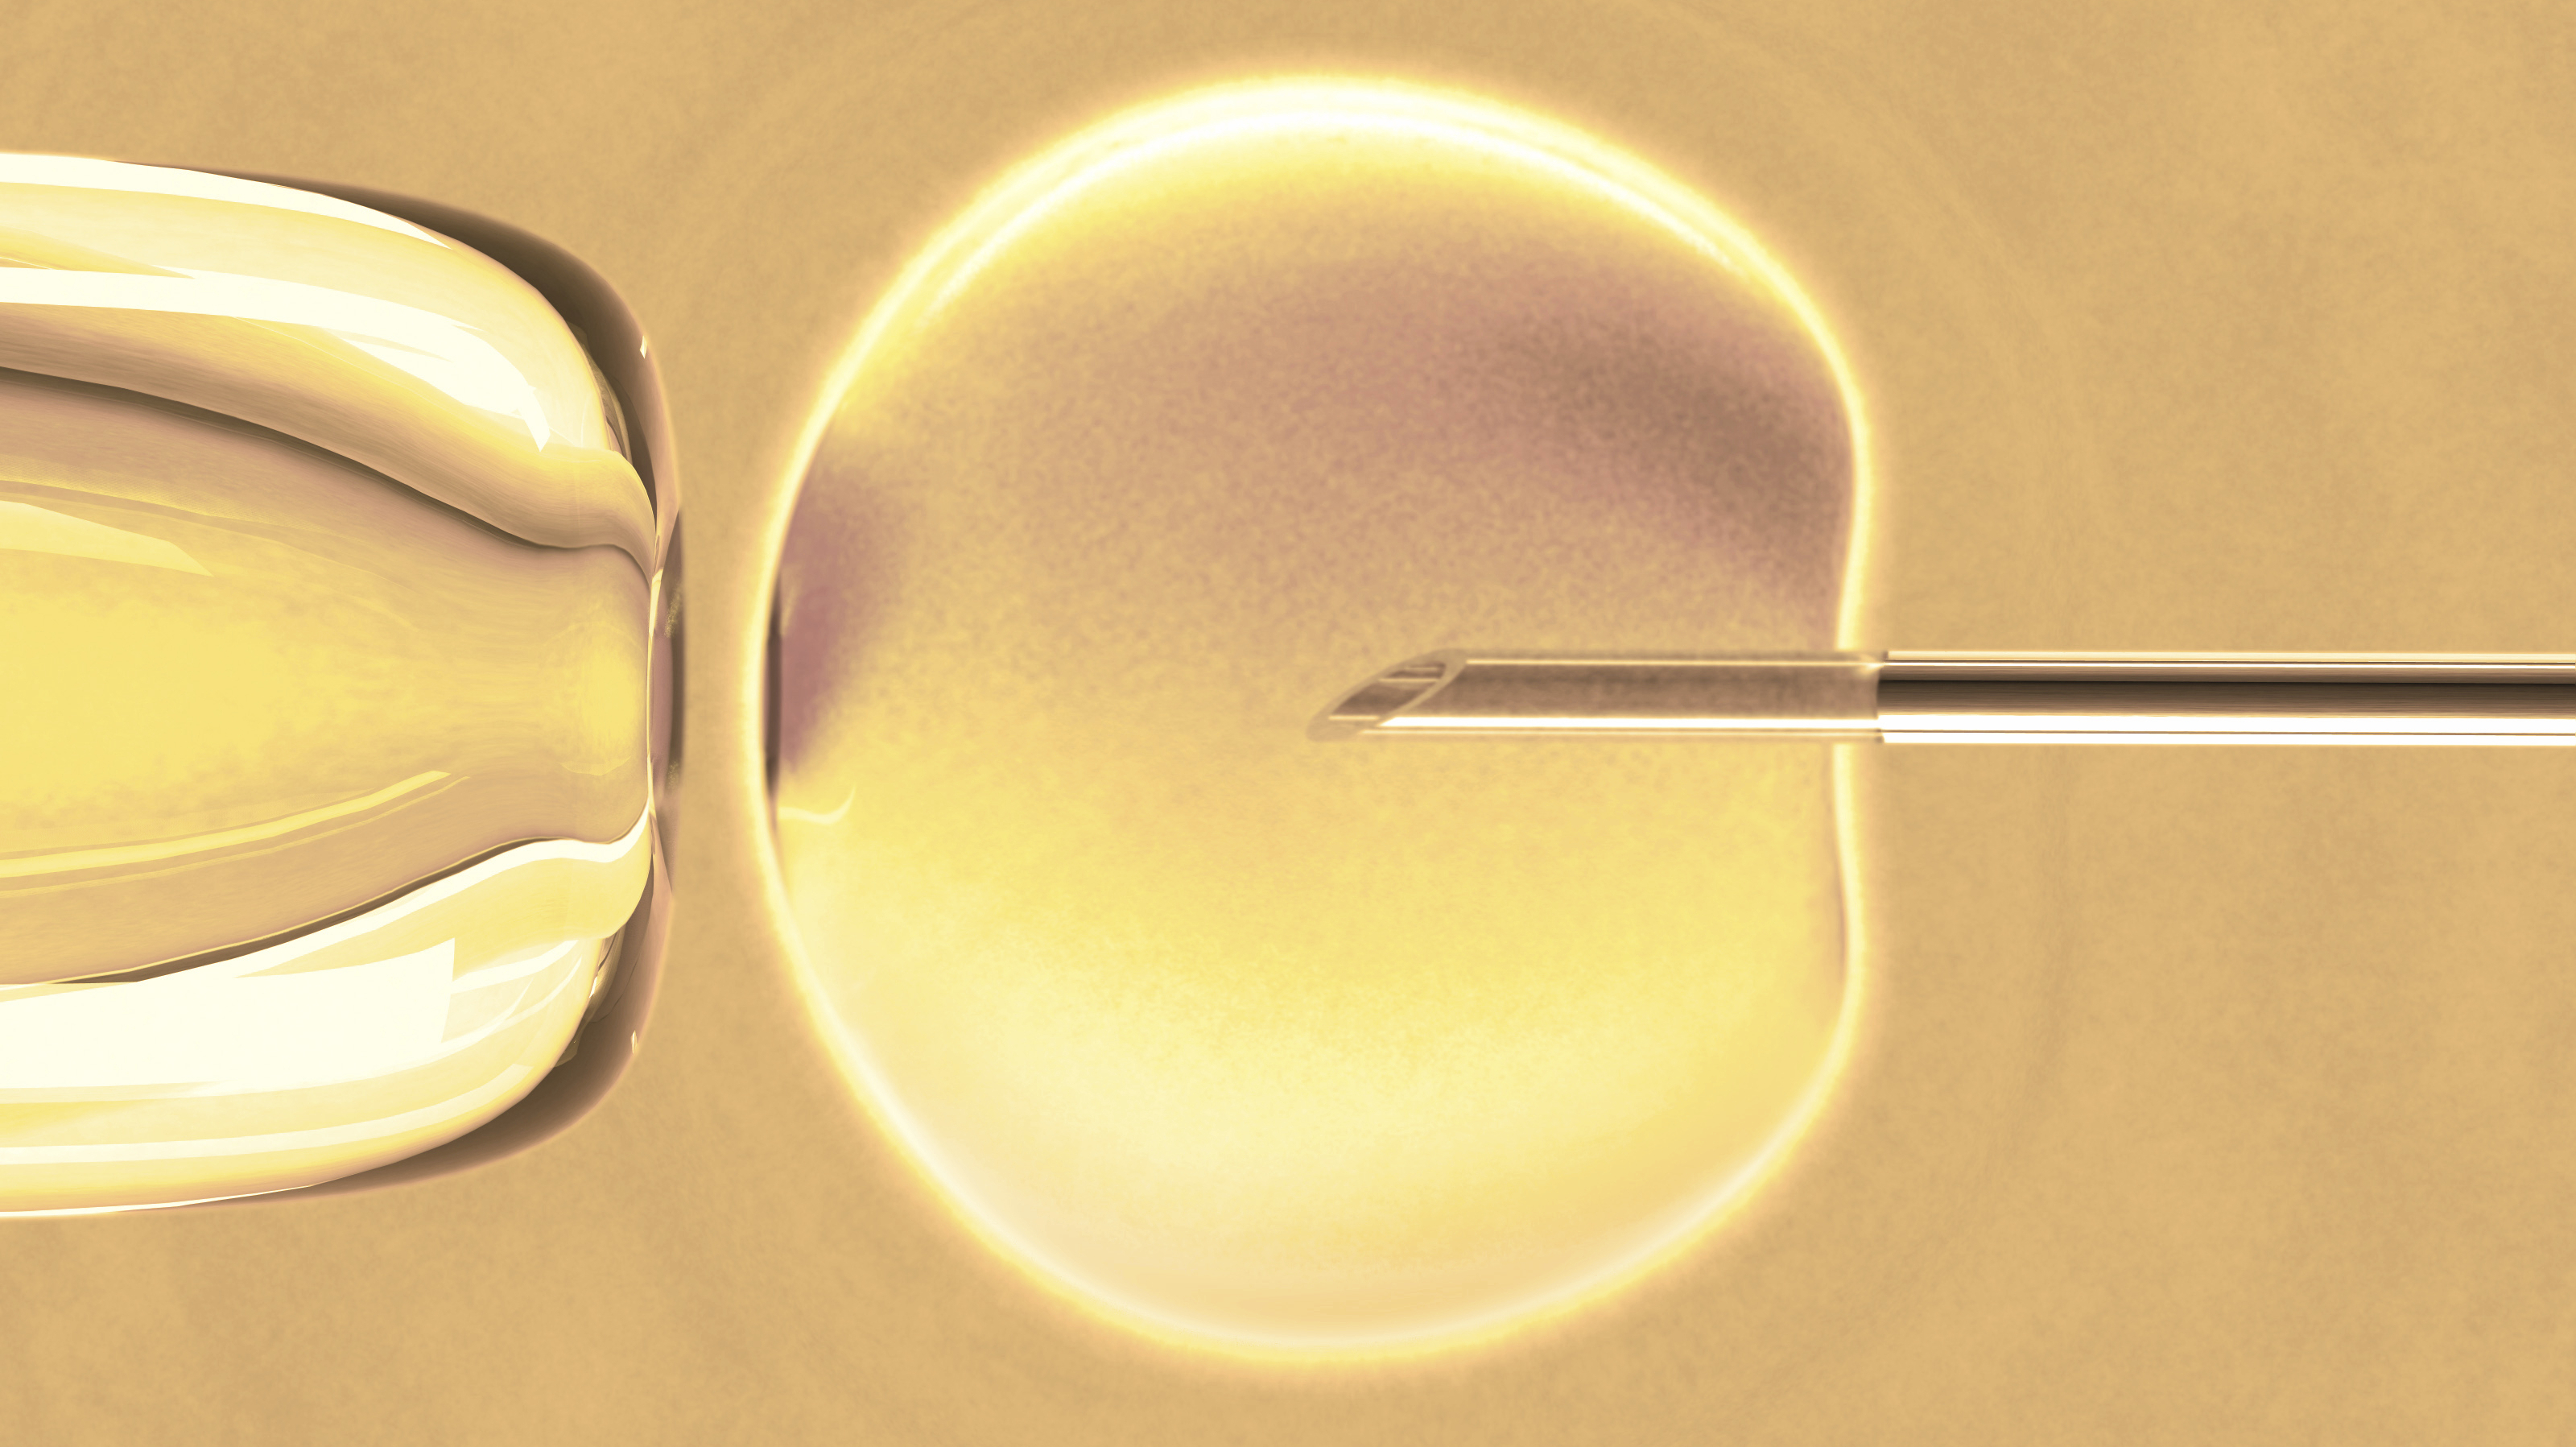 IVF Baby Boom: Births From Fertility Procedures Hit New High